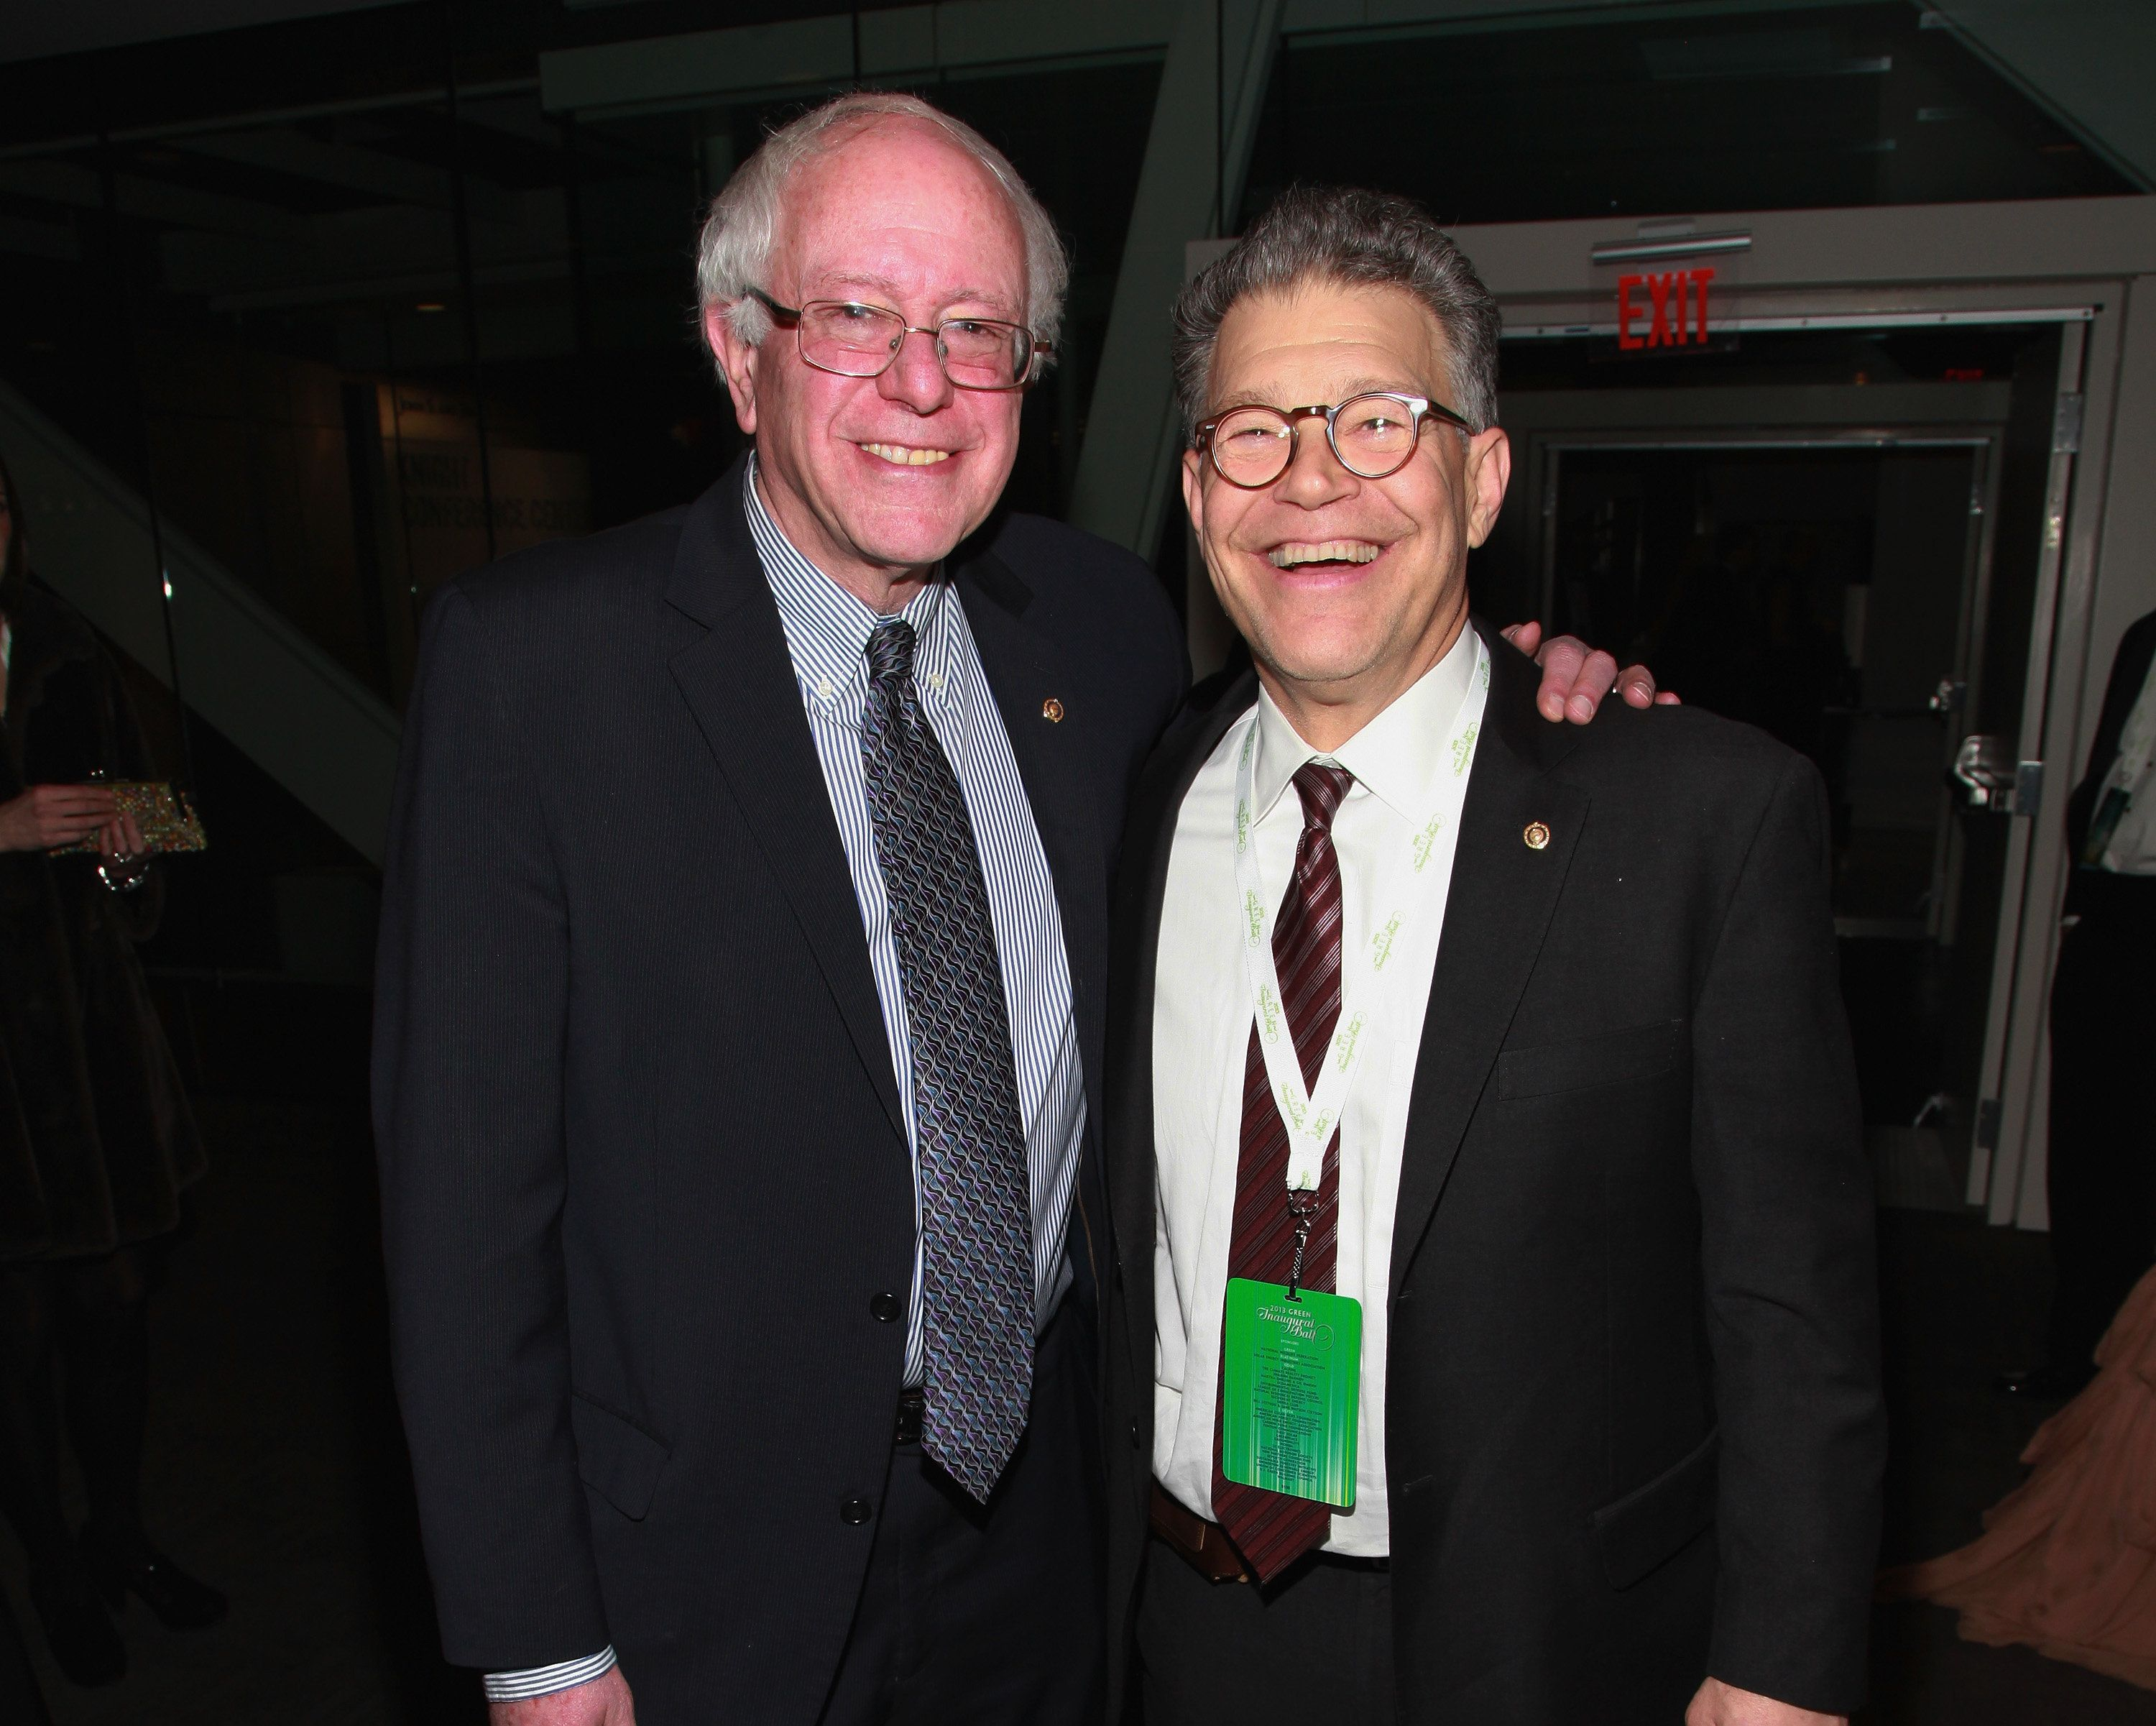 WASHINGTON, DC - JANUARY 20:  Senators Bernie Sanders, I-Vermont, and Al Franken, D-Minnesota, attend theq 2013 Green Inaugural Ball at NEWSEUM on January 20, 2013 in Washington, DC.  (Photo by Taylor Hill/Getty Images)